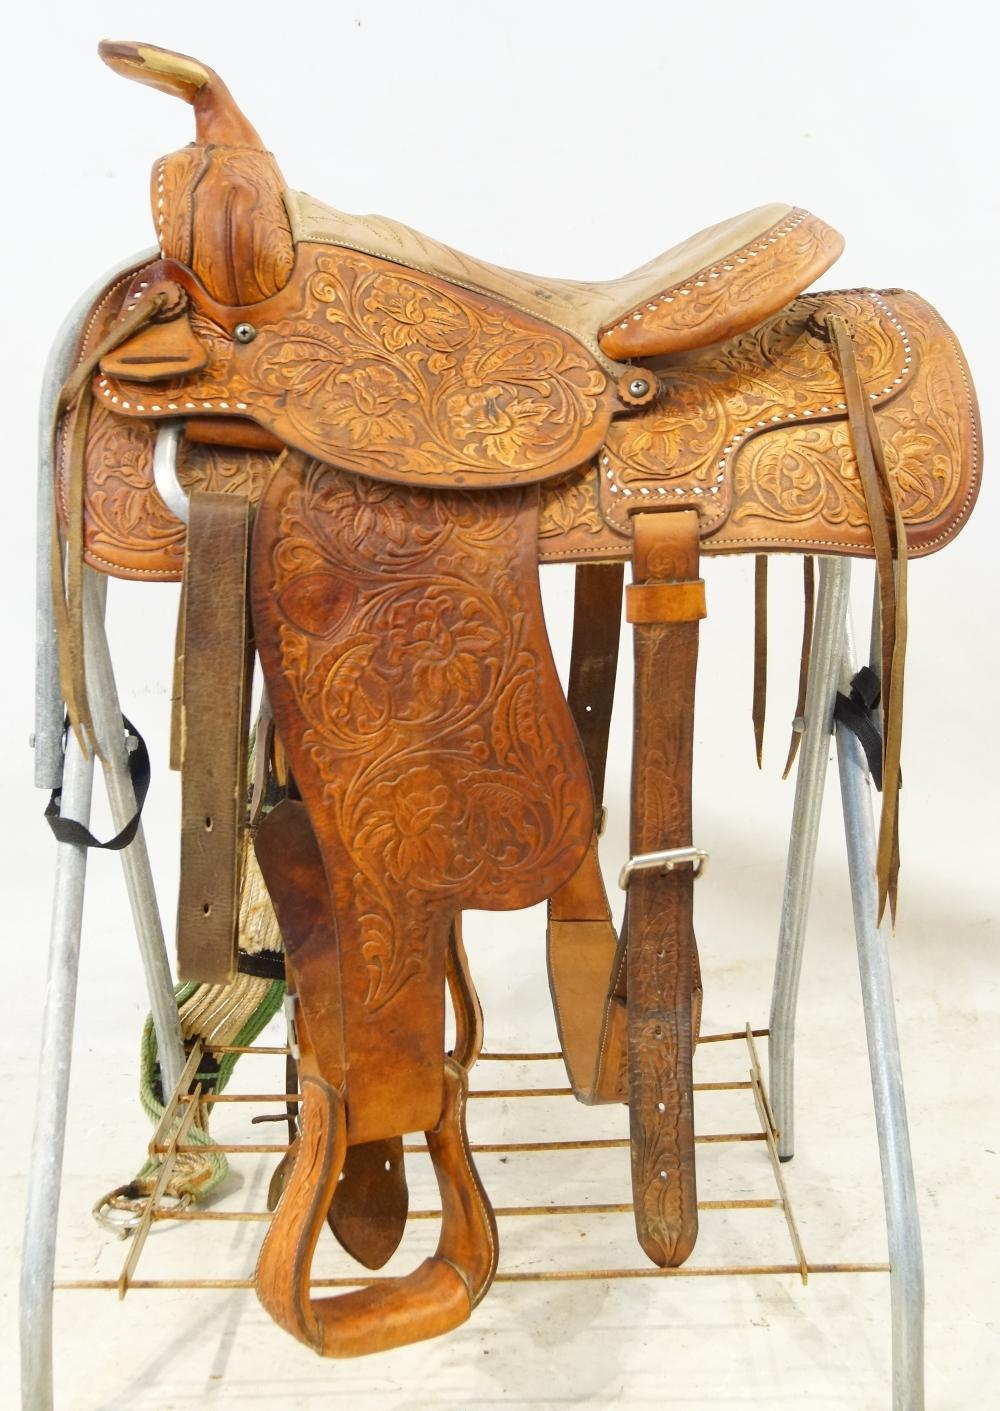 Dating hereford saddles